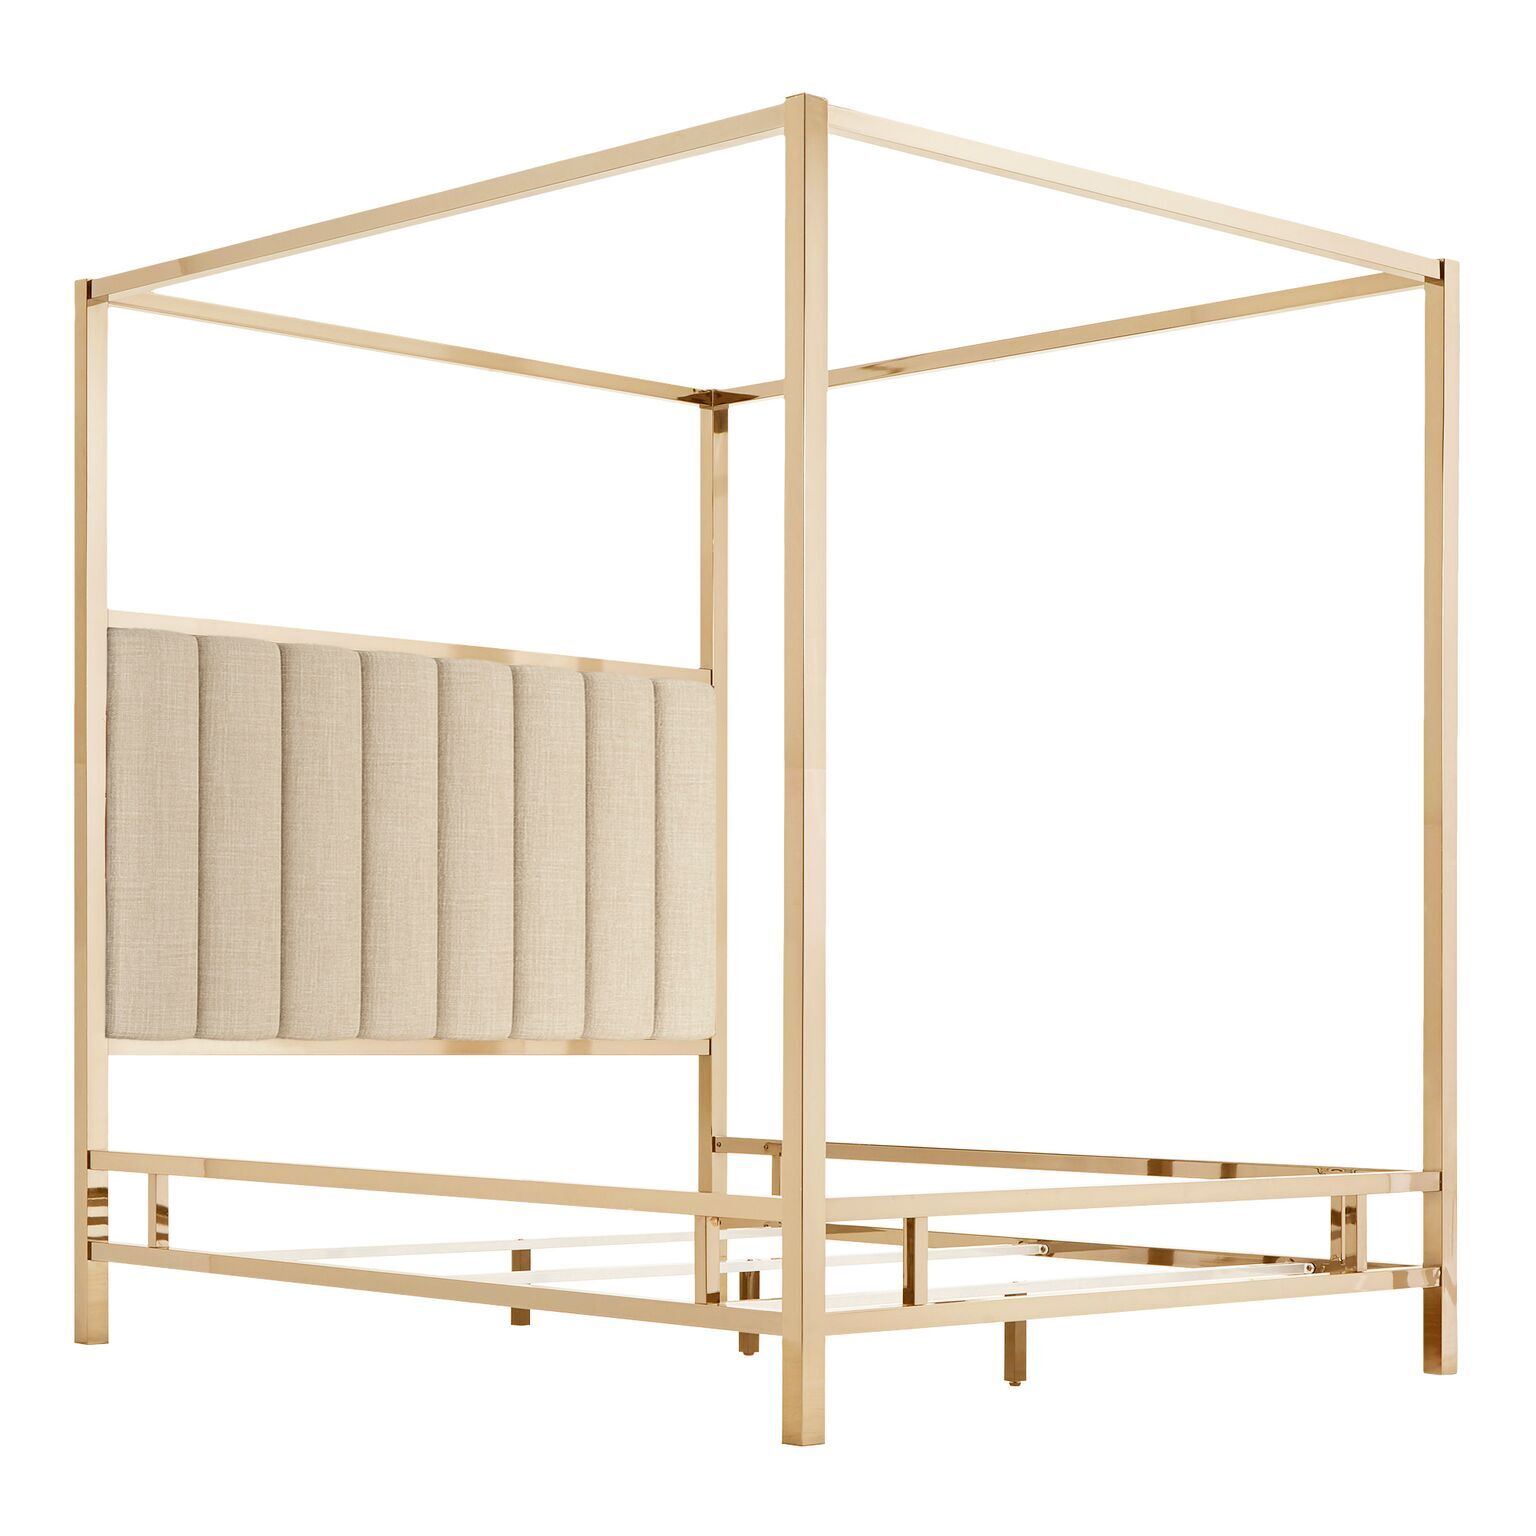 Wicklund Upholstered Canopy Bed Color (Frame/Headboard): Champagne Gold/Beige, Size: King